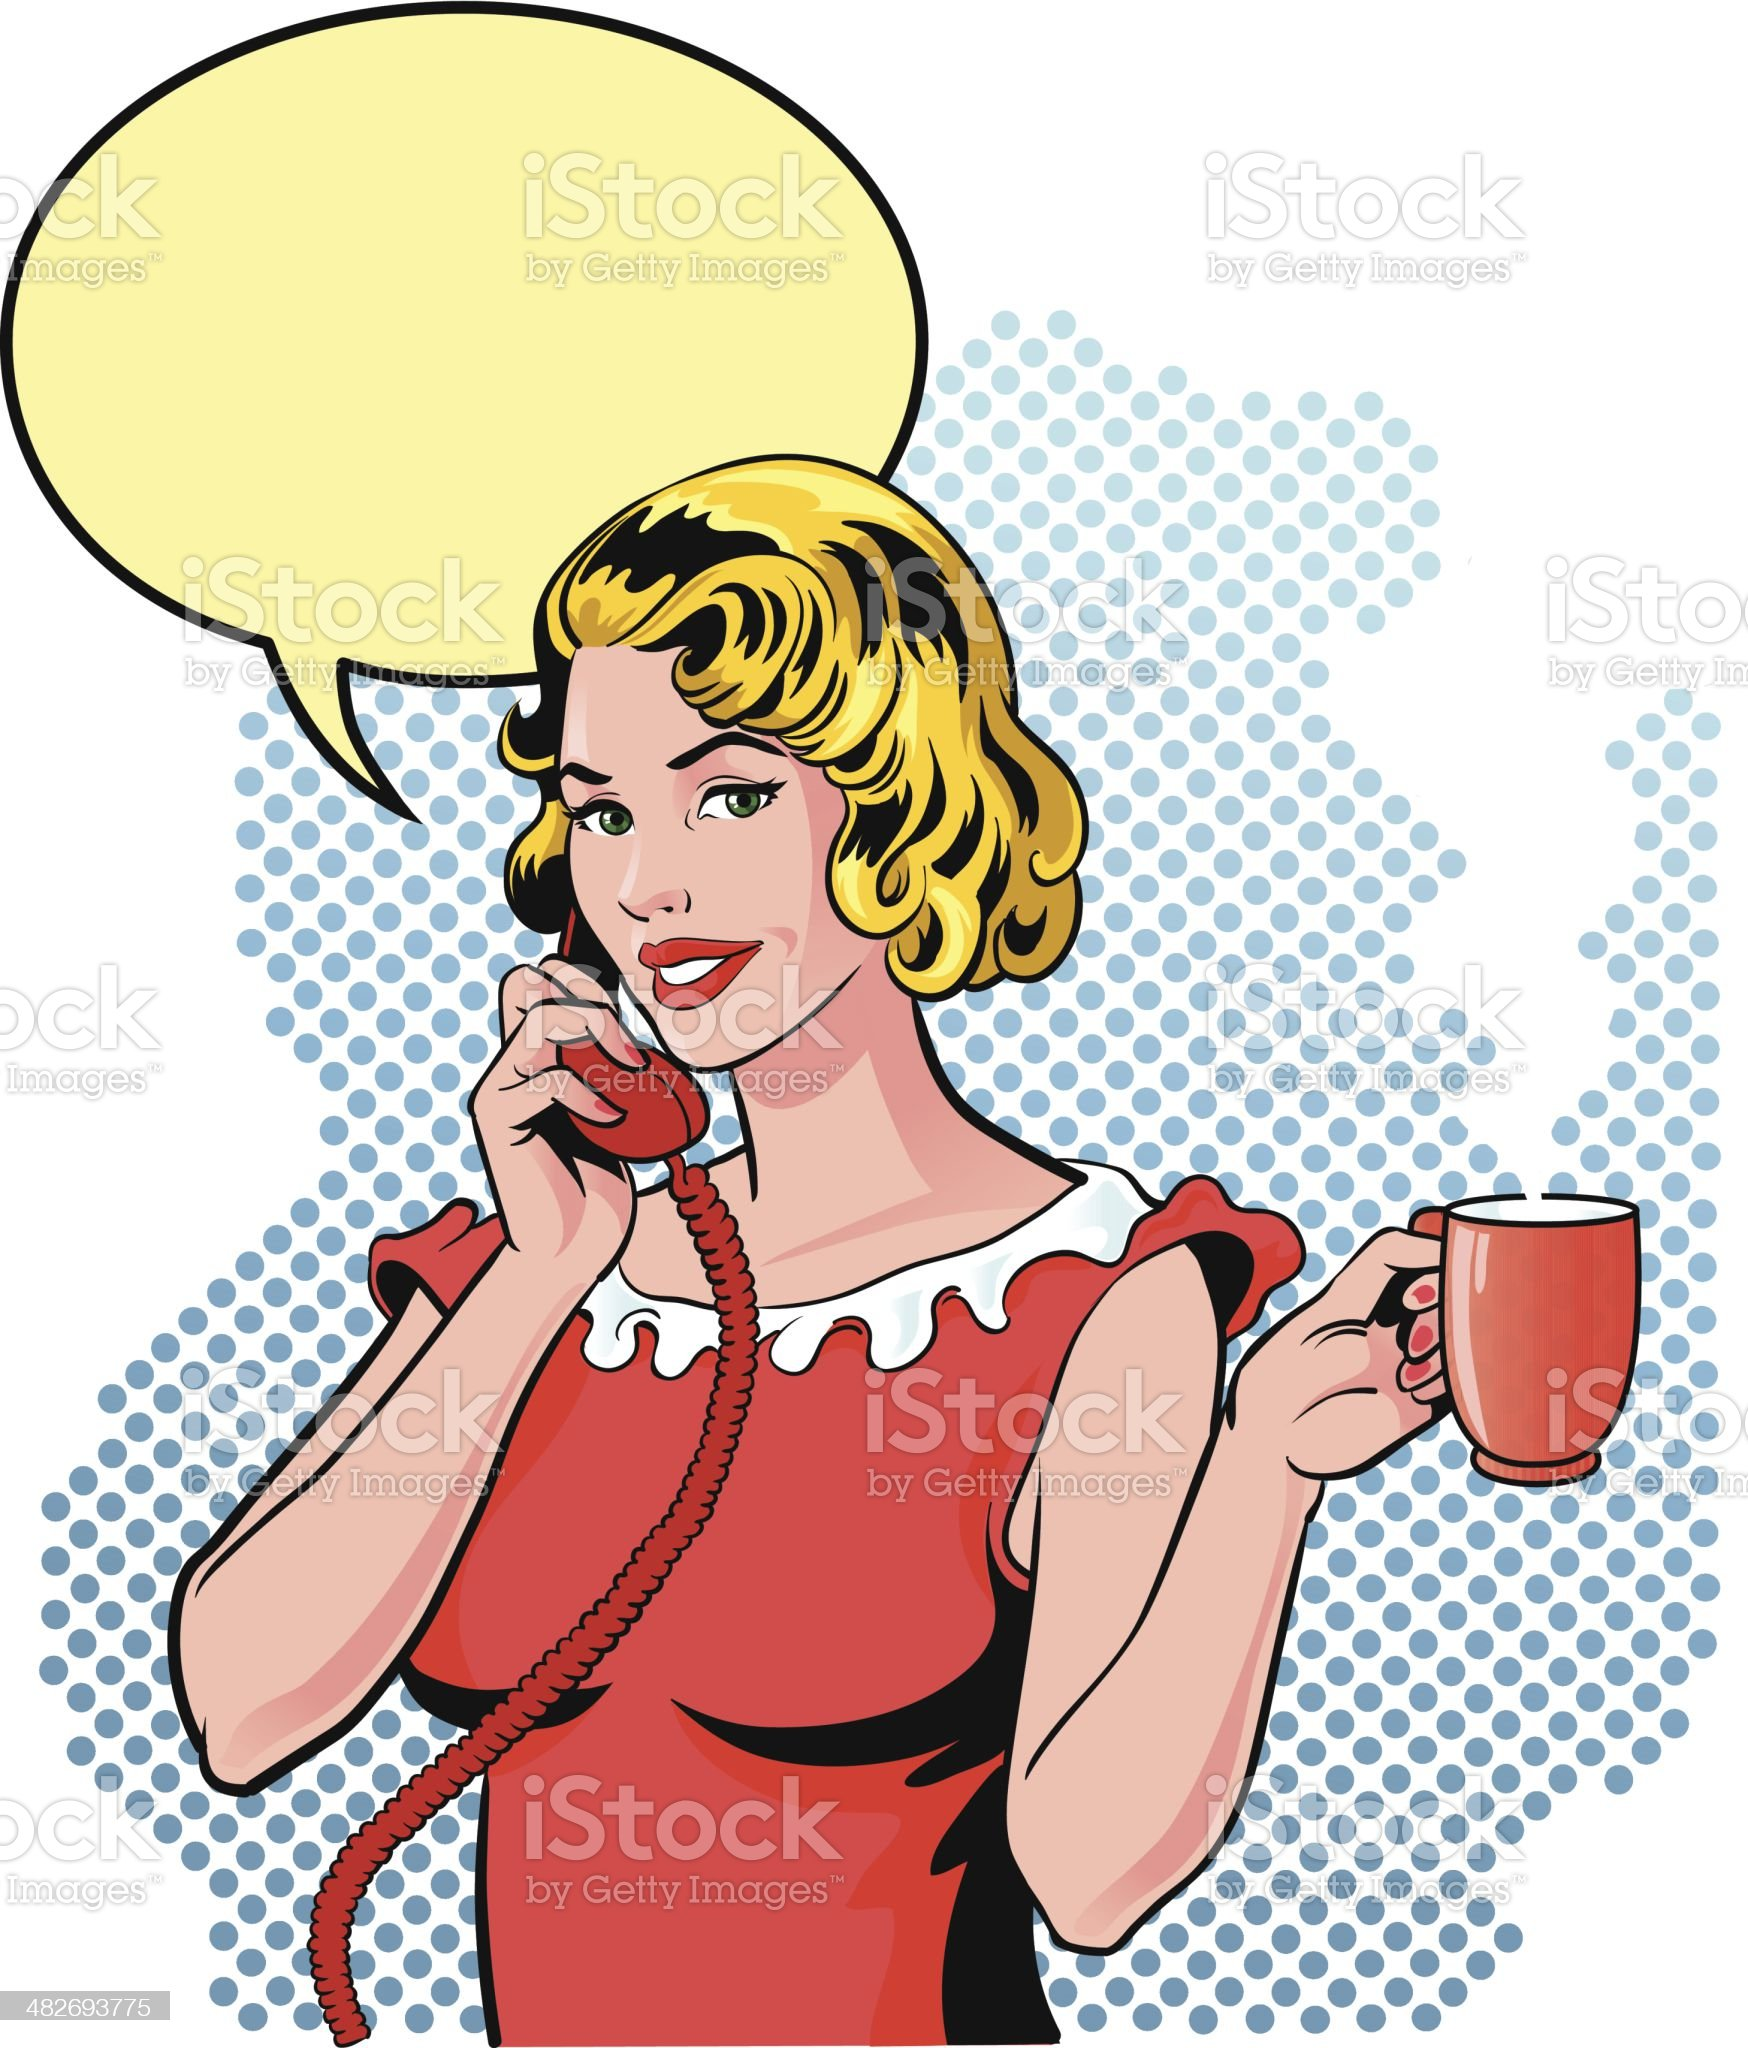 Small Gossip on the Phone with Cup of Coffee royalty-free stock vector art